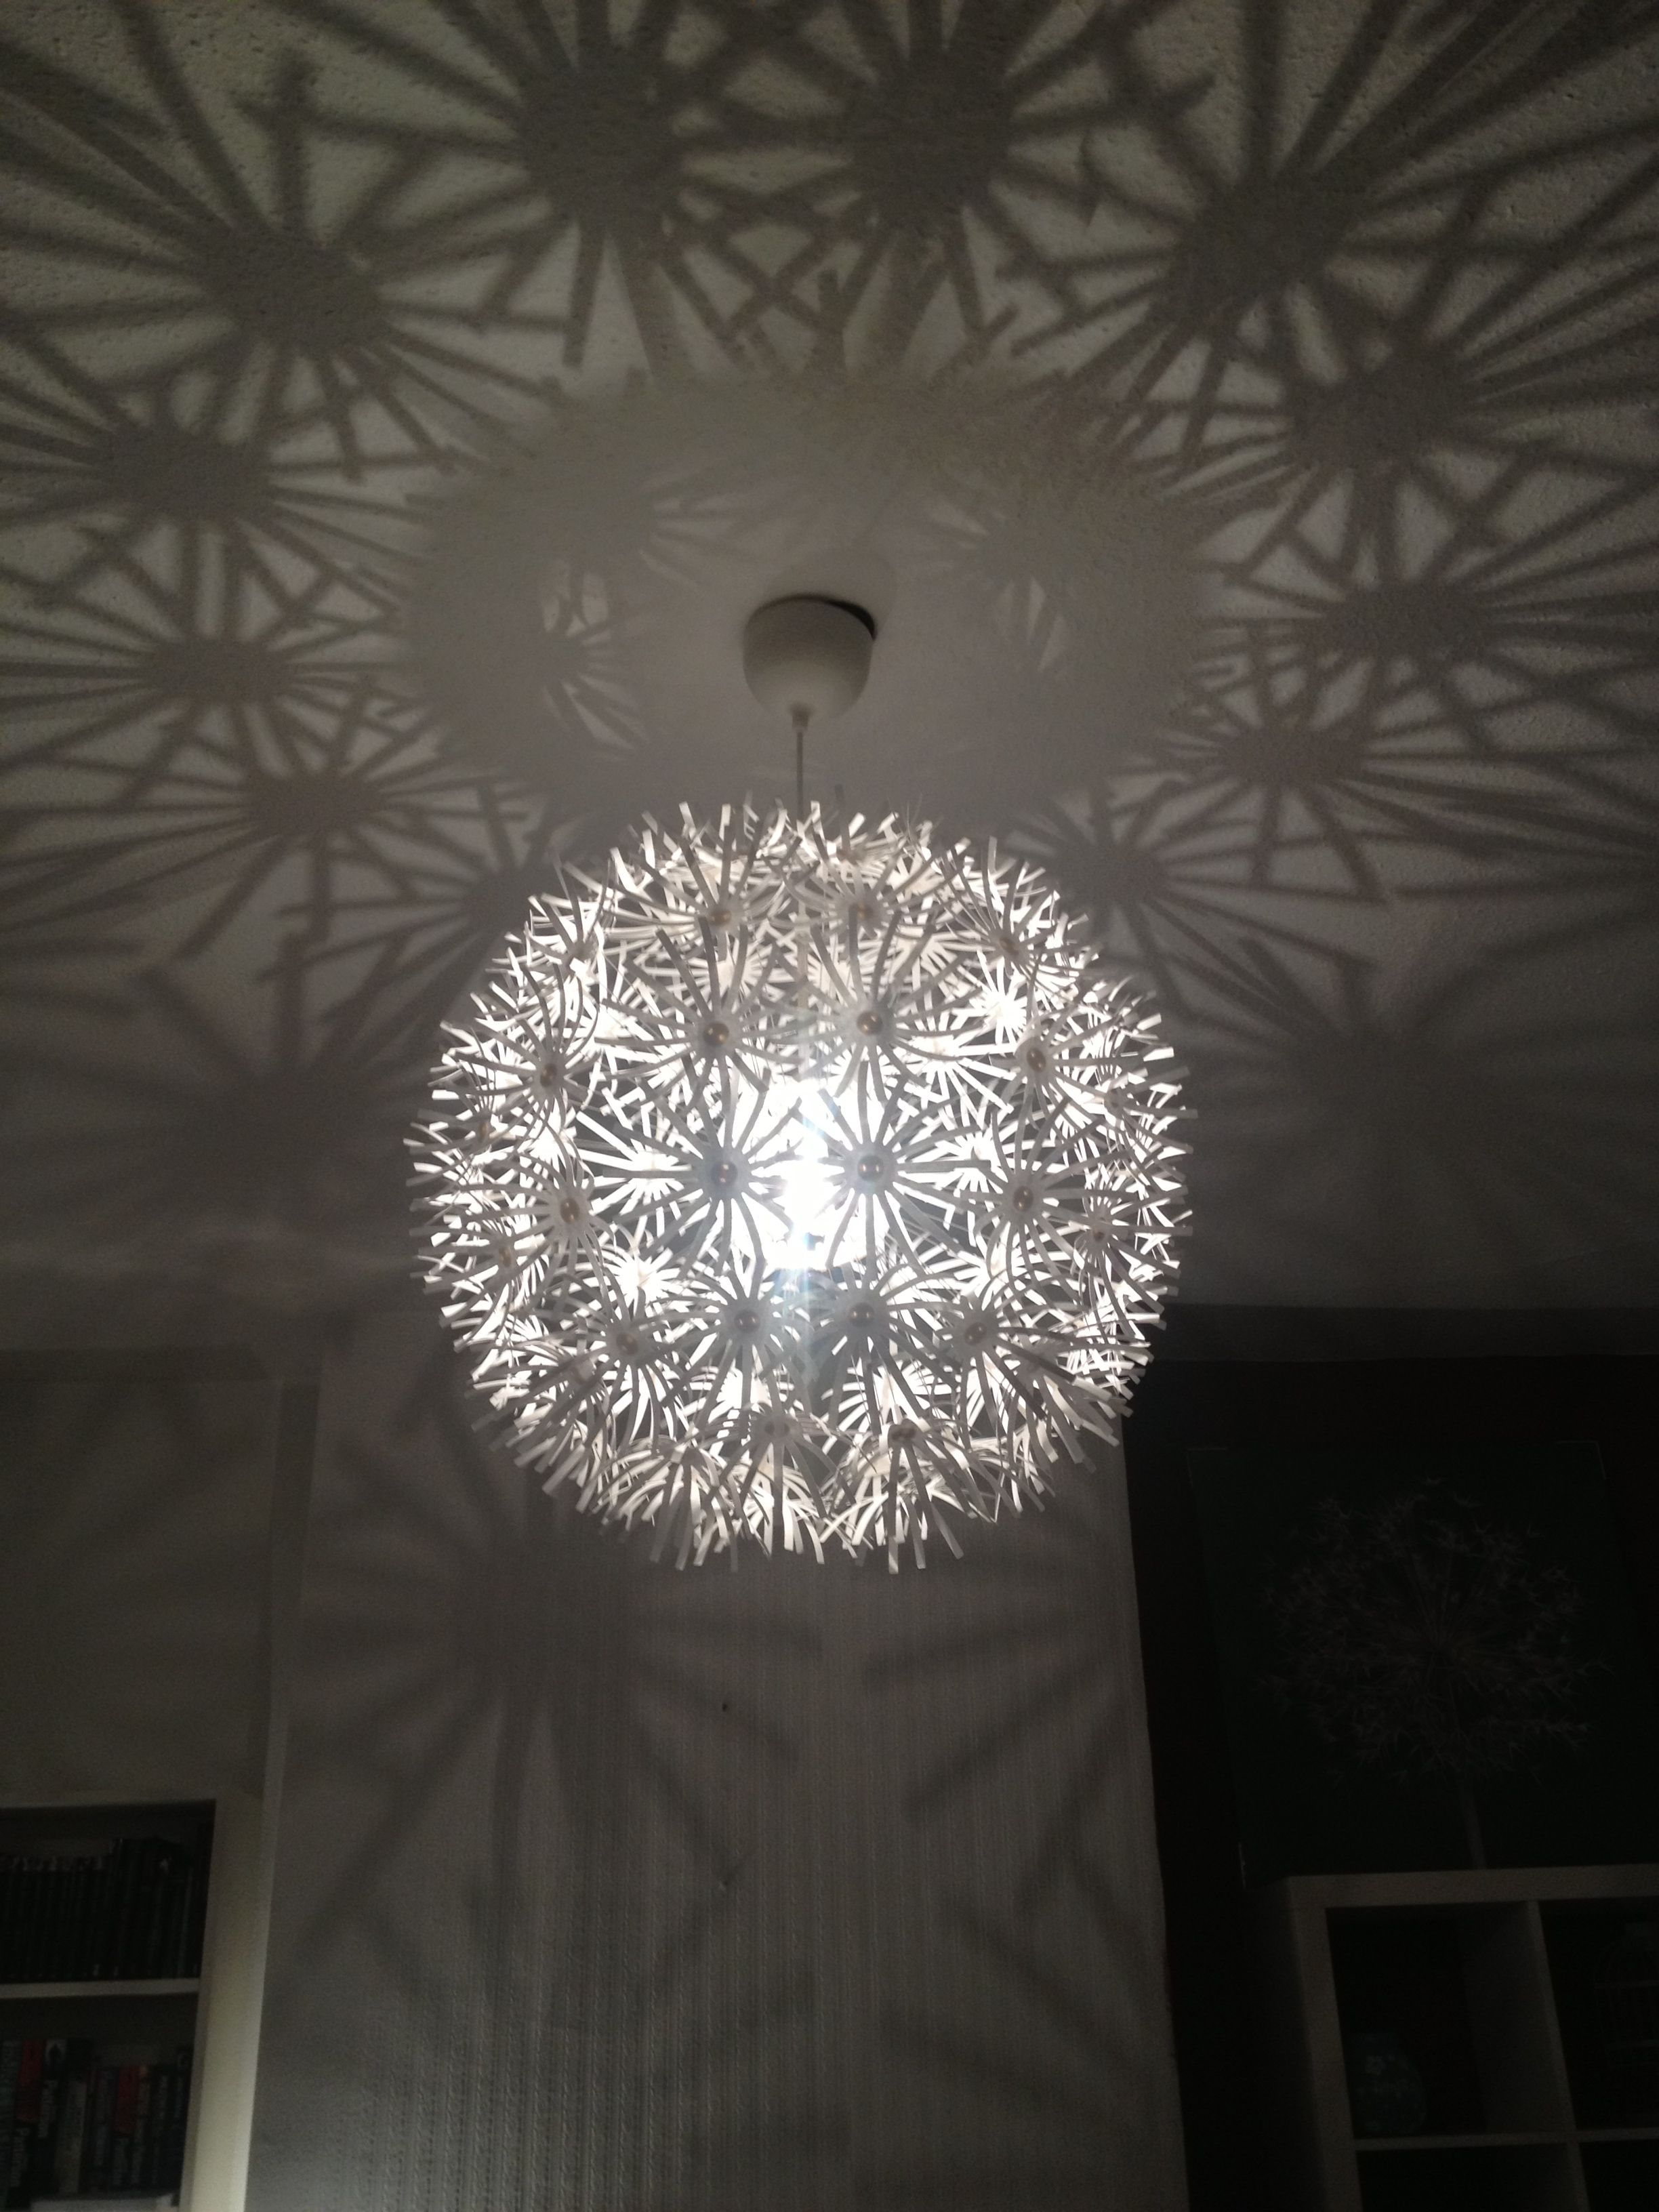 Ikea Ceiling Light With Lovely Shadows Ikea Ceiling Light Bedroom Lighting Hanging Bedroom Lights